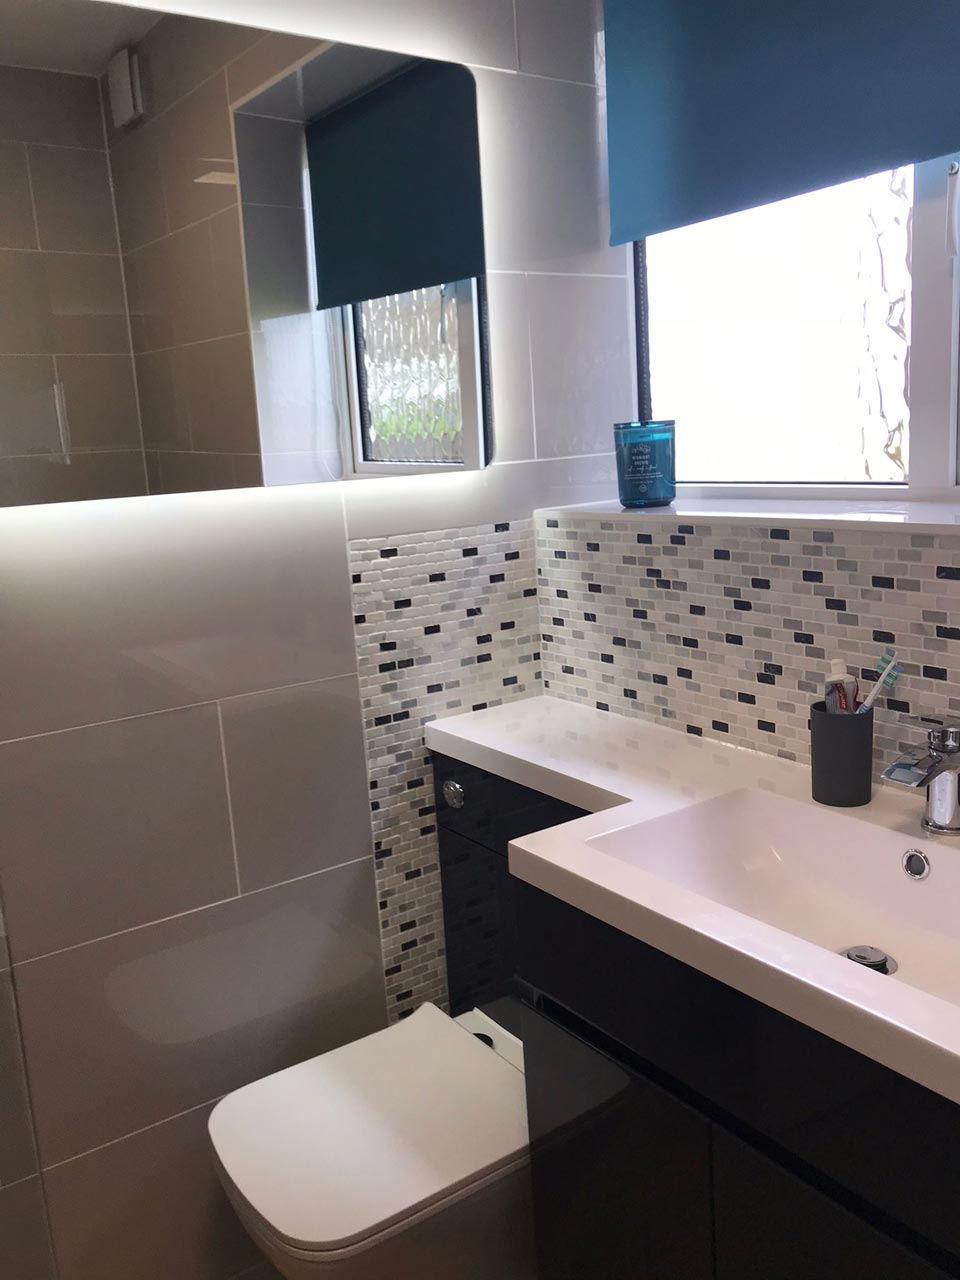 cNew Bathroom Fit Ground Floor Flat in Highcliffe - After - Emerald Builders Ltd Bournemouth Poole Christchurch Dorset